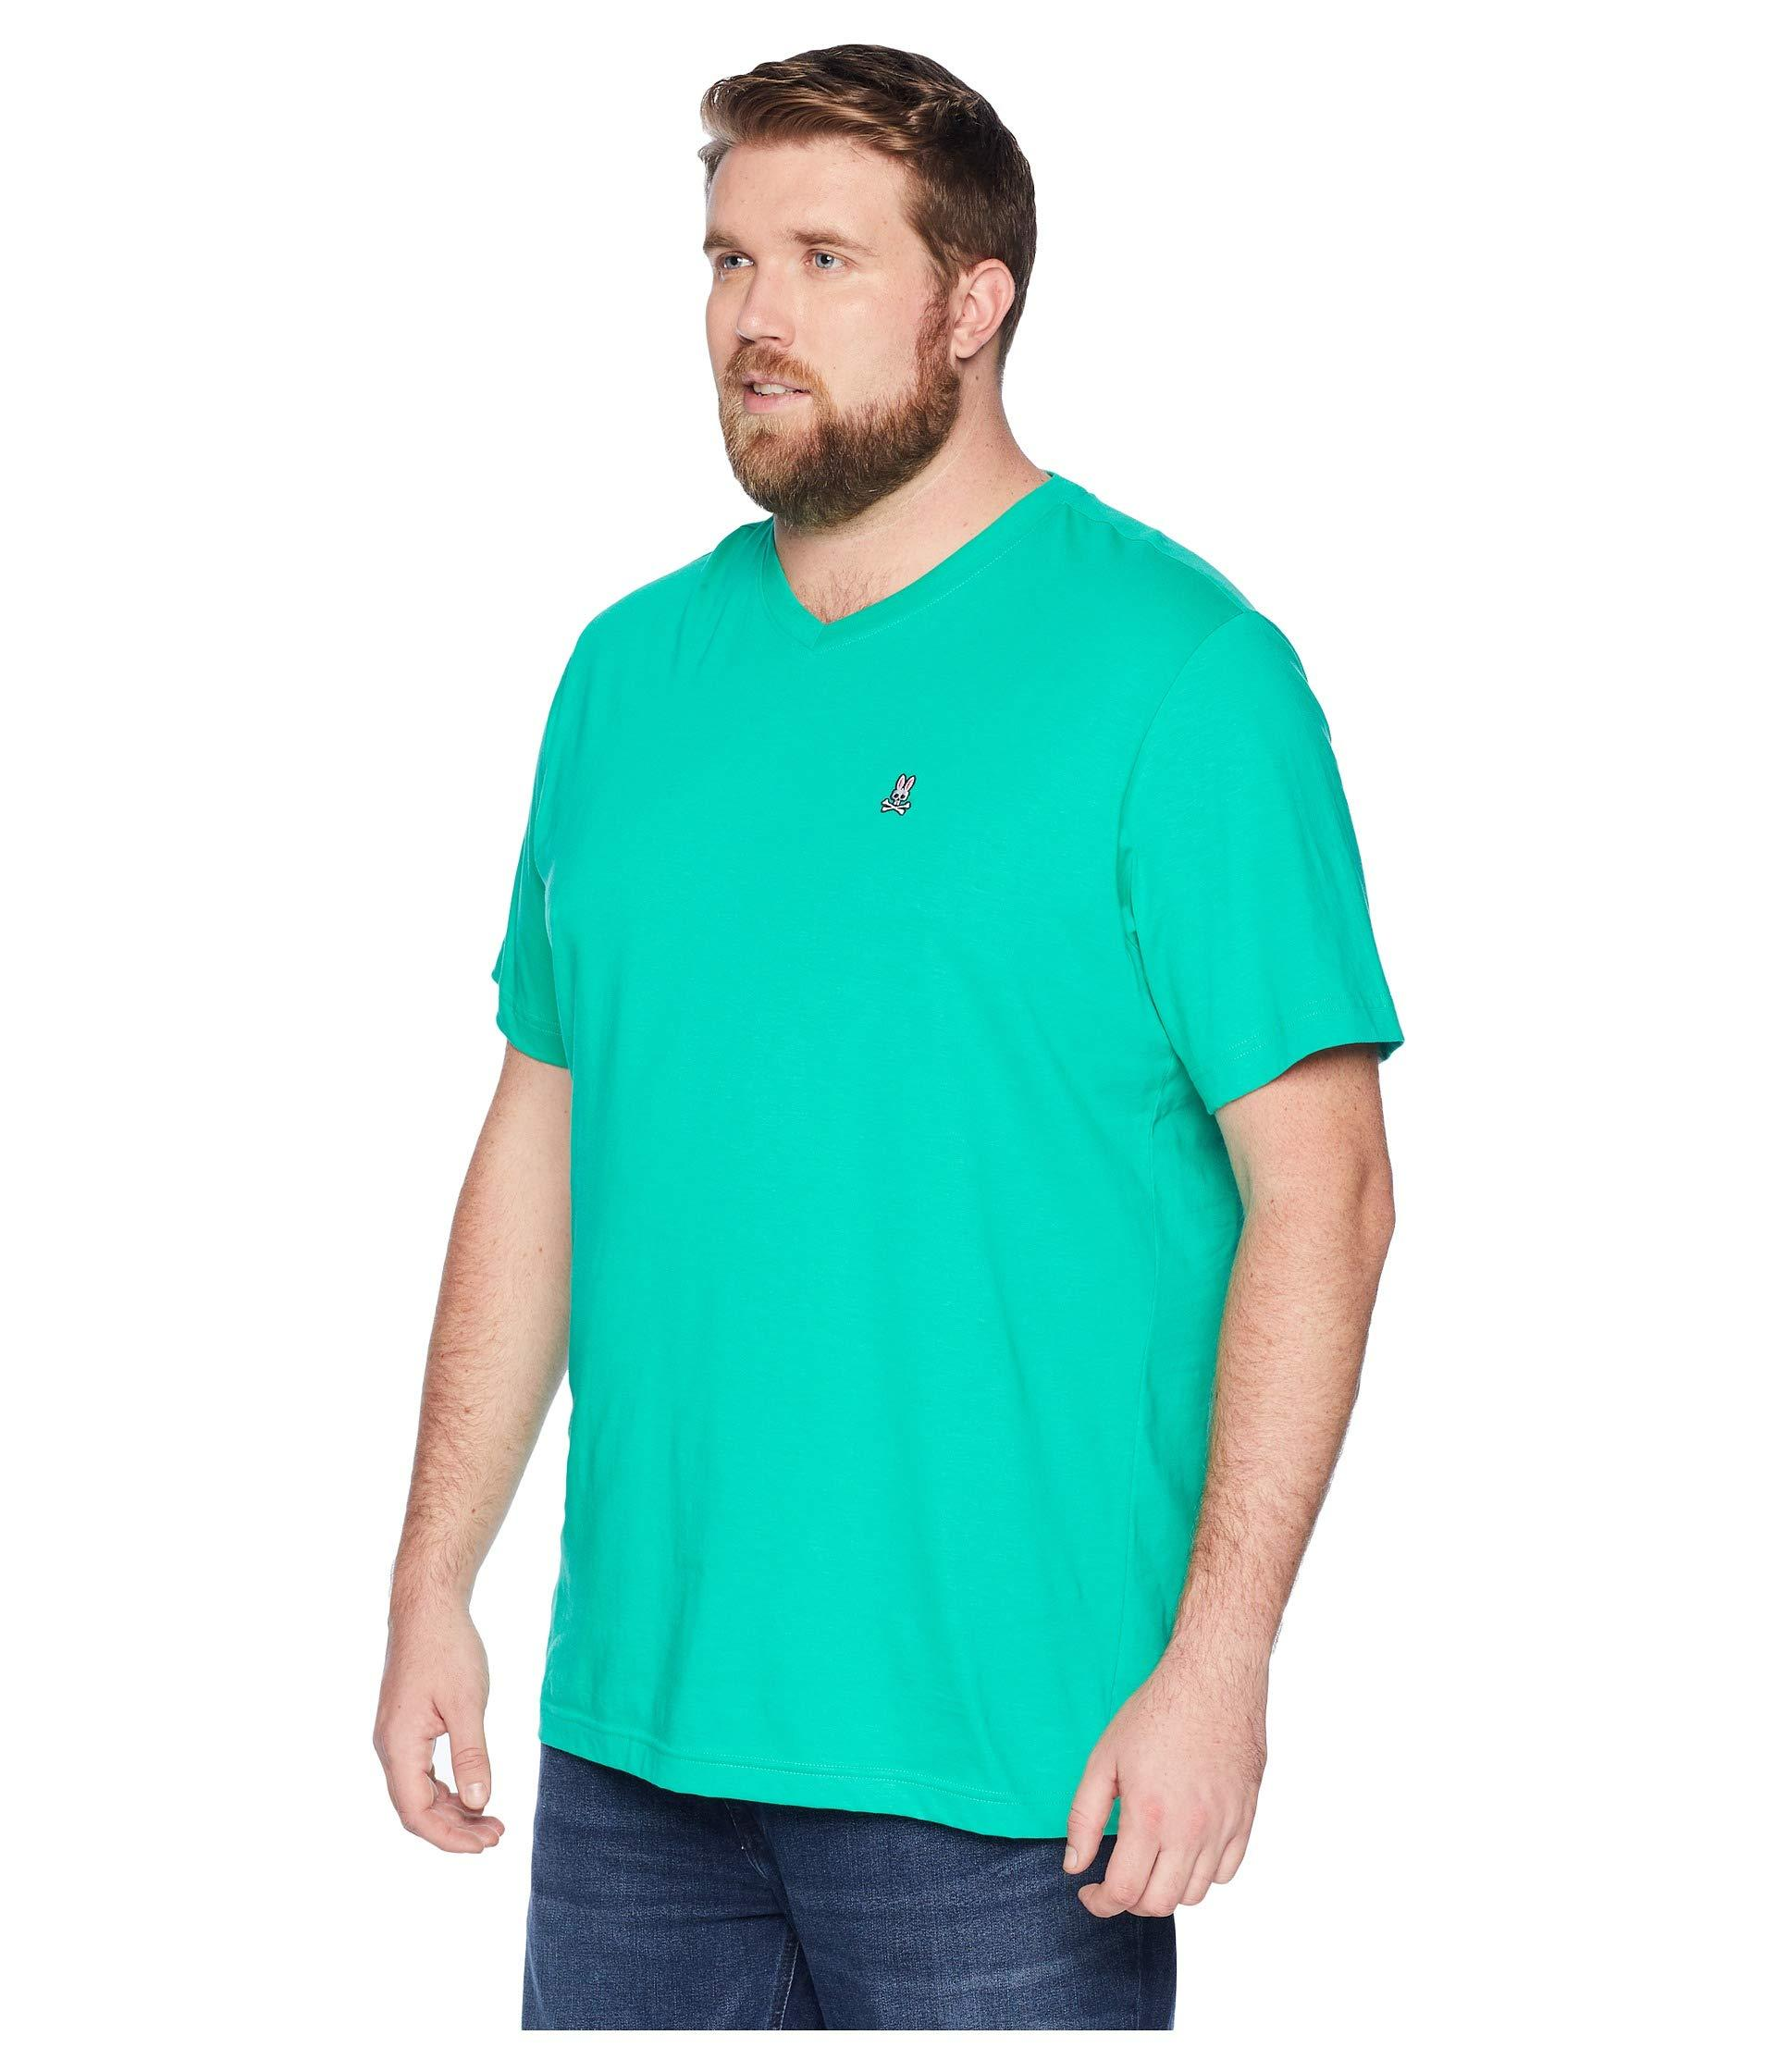 2175342db57 Lyst - Psycho Bunny Big And Tall V-neck T-shirt in Green for Men - Save 9%